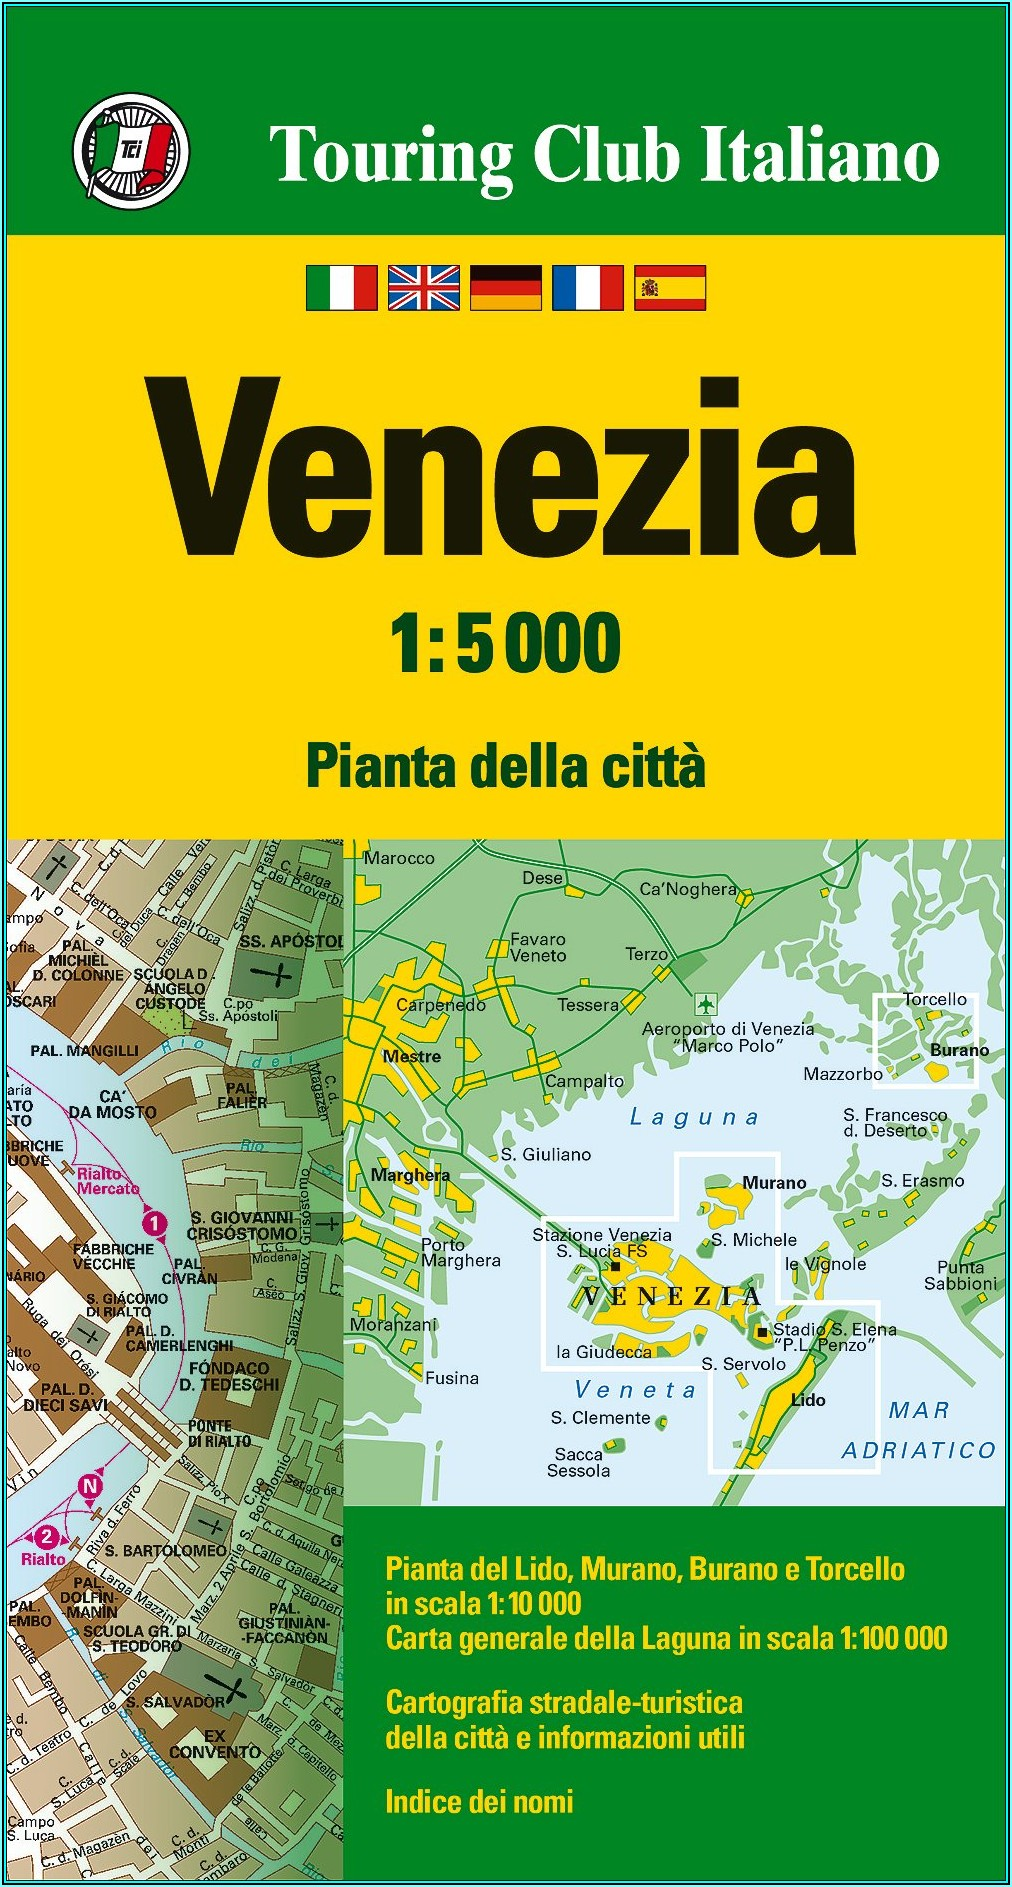 Touring Club Italiano Venice Map